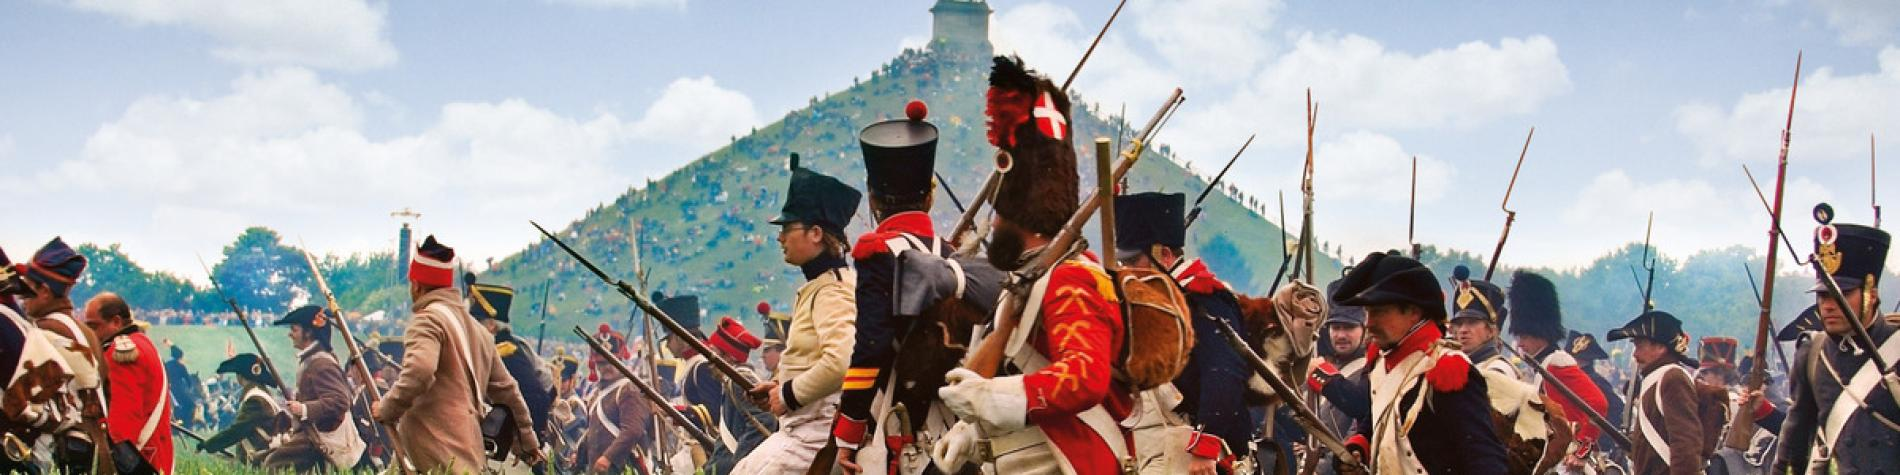 Commemoration The Battle of Waterloo - Discover Belgium.JPEG